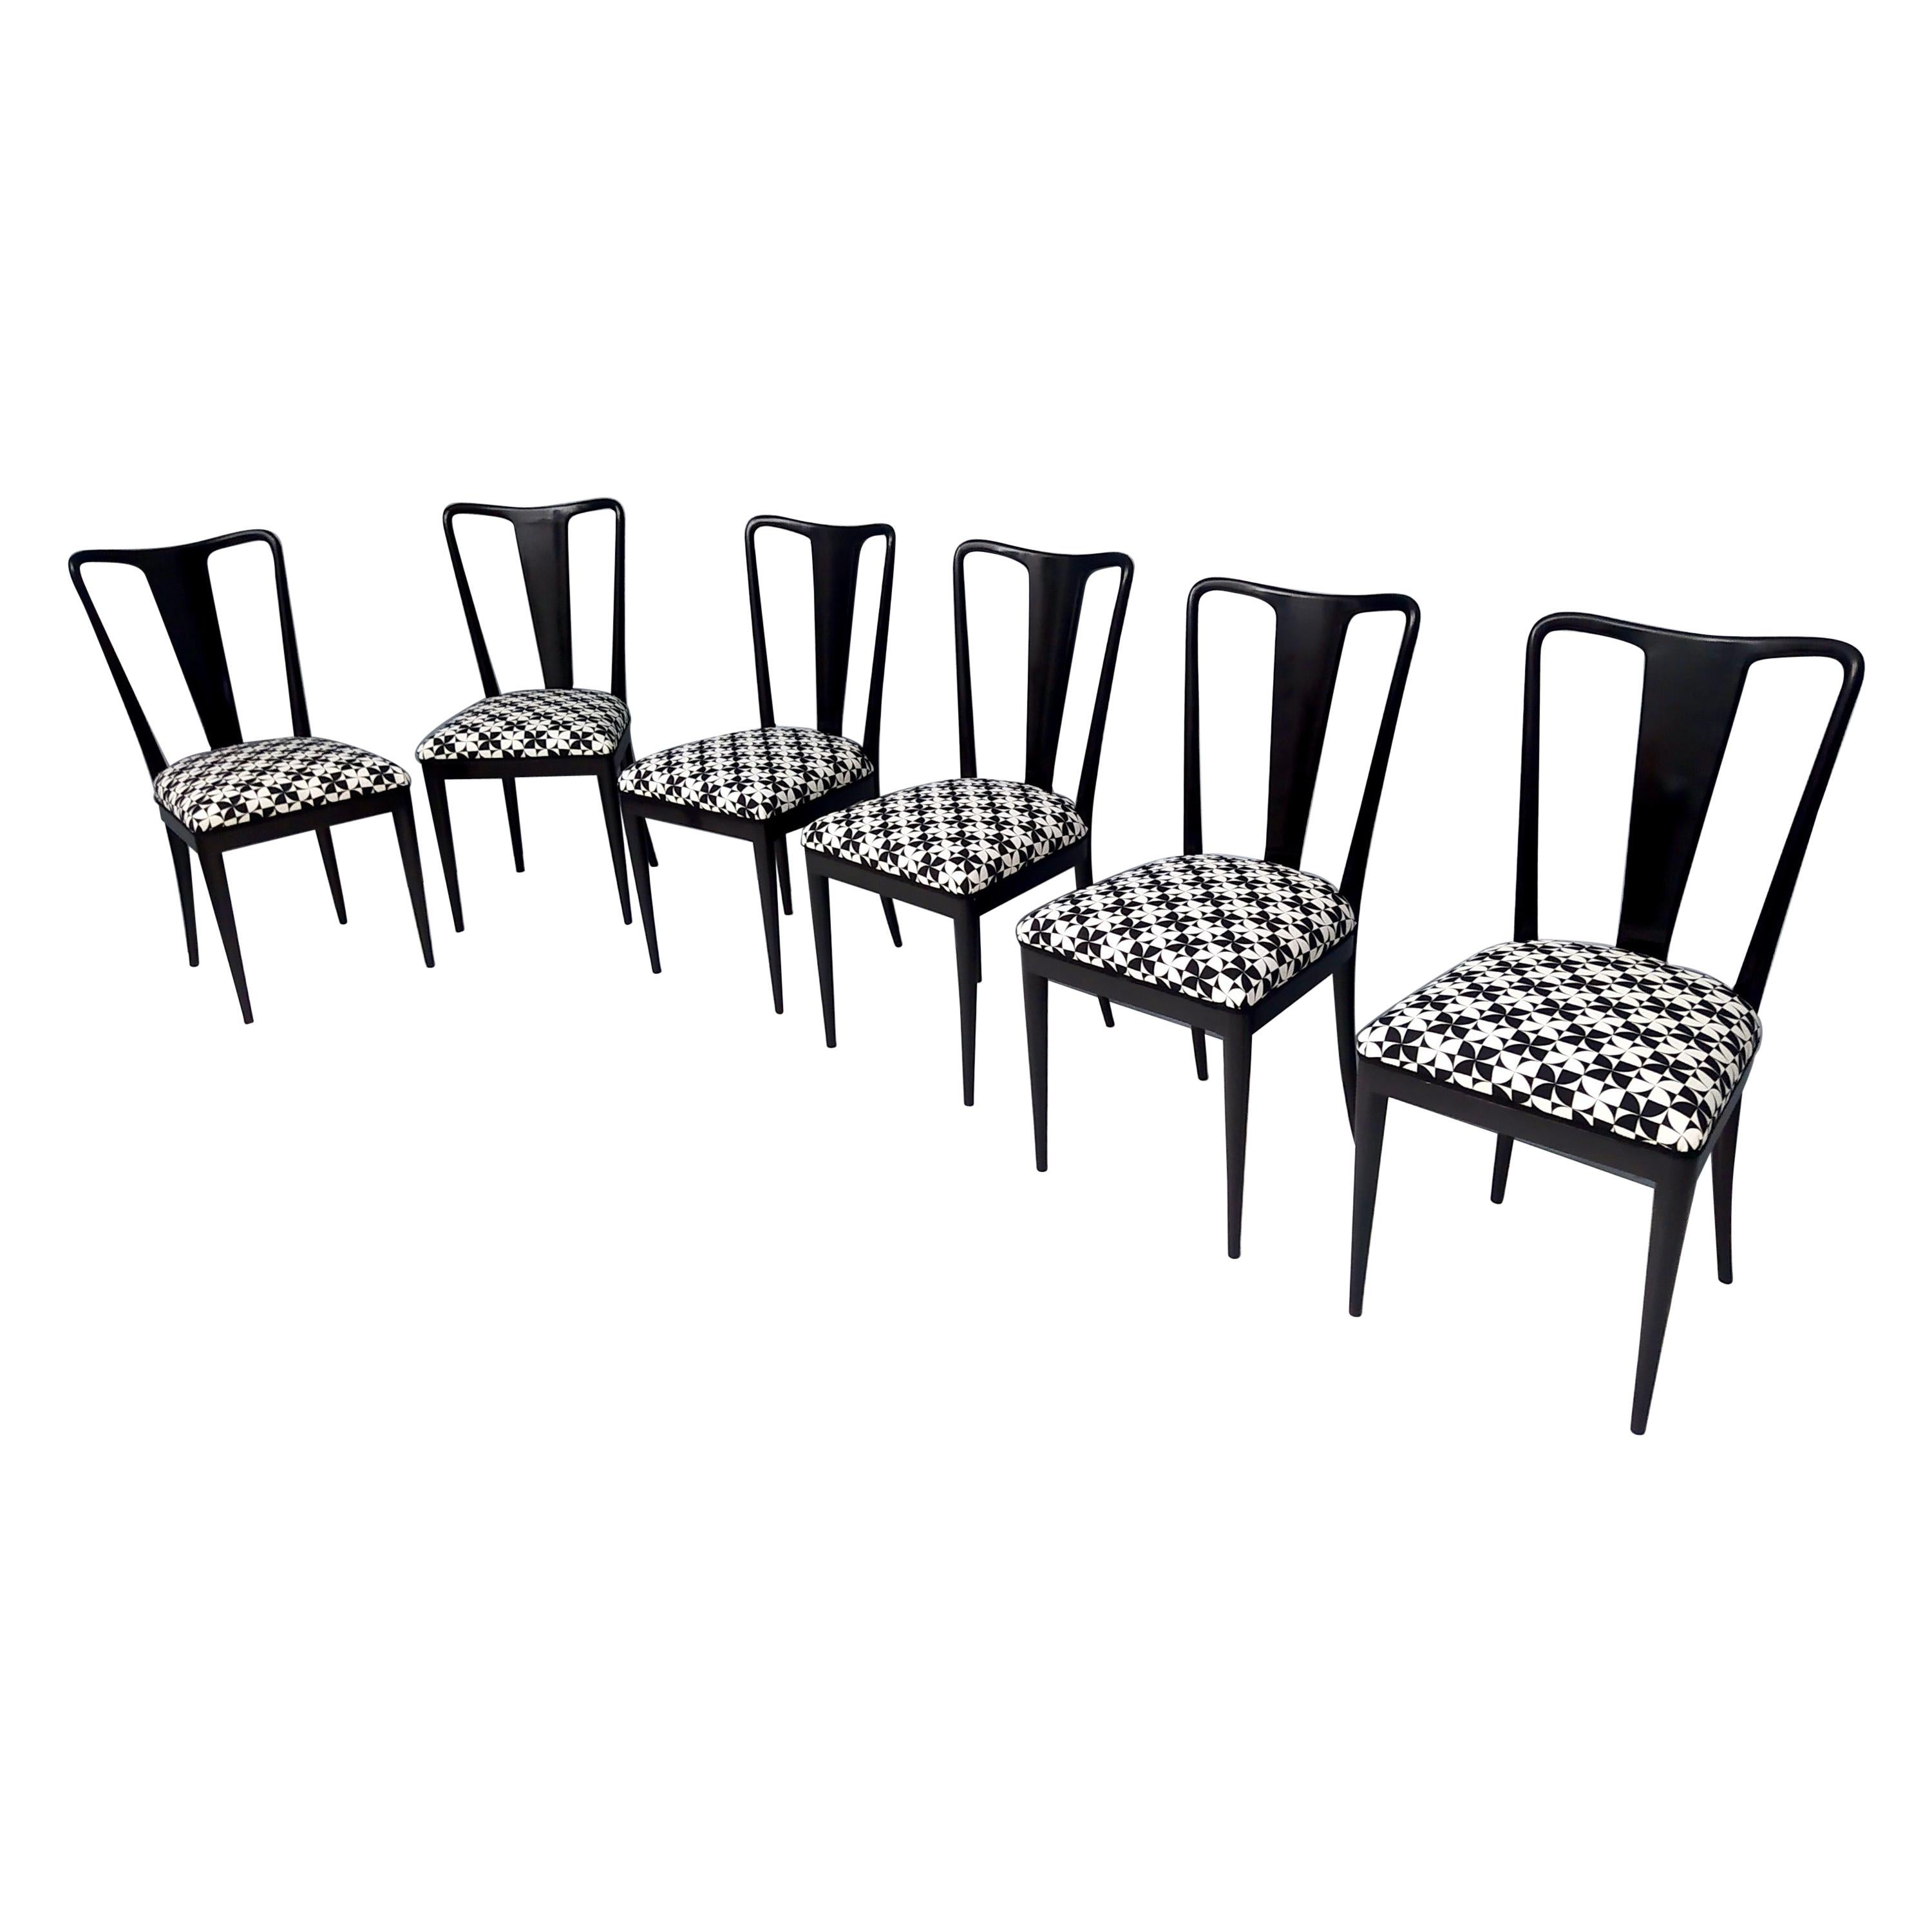 Set of Six Patterned Ebonized Walnut Chairs by Guglielmo Ulrich, Italy